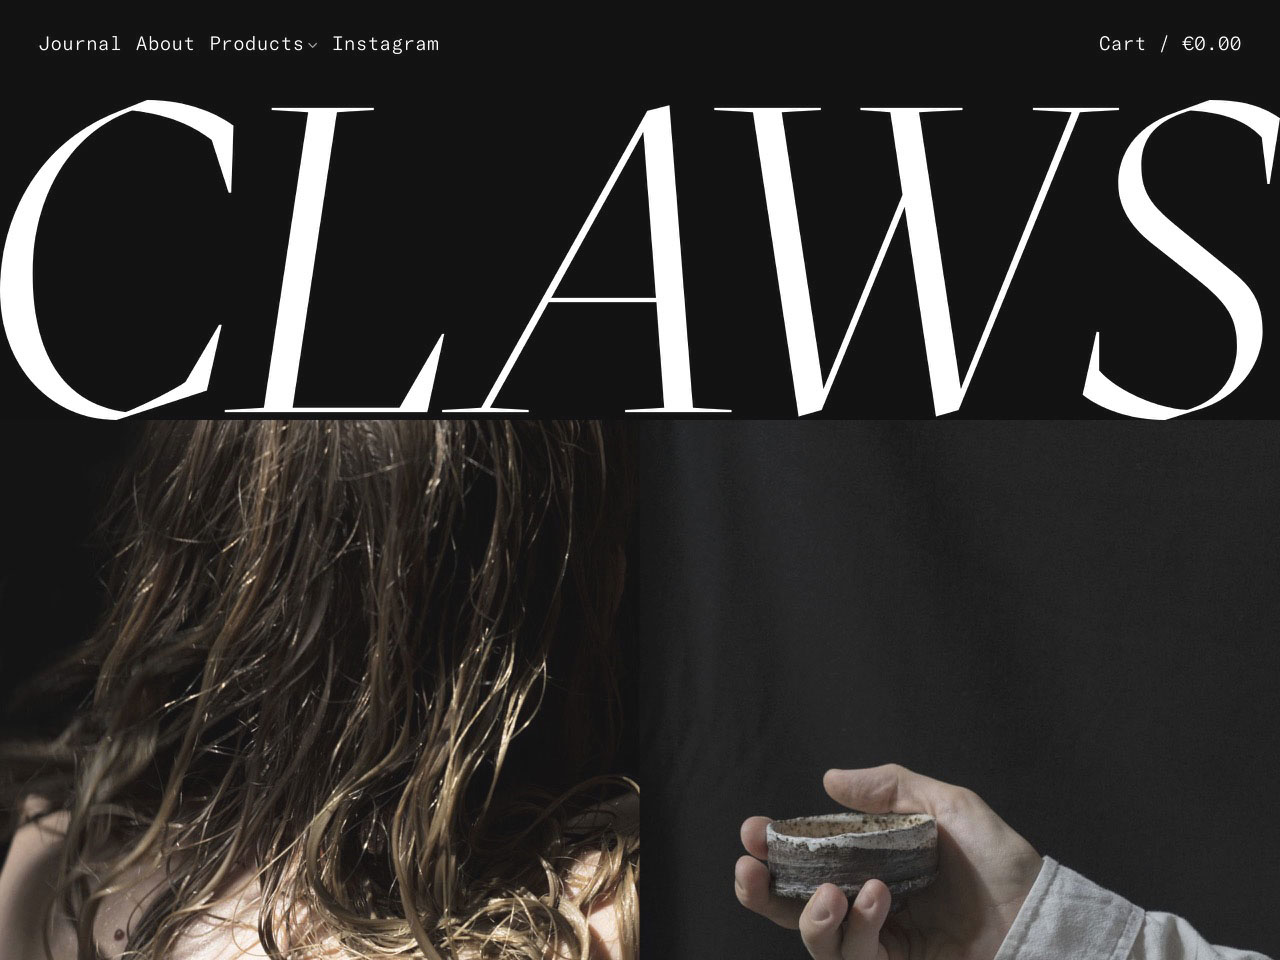 Claws   tea   objects